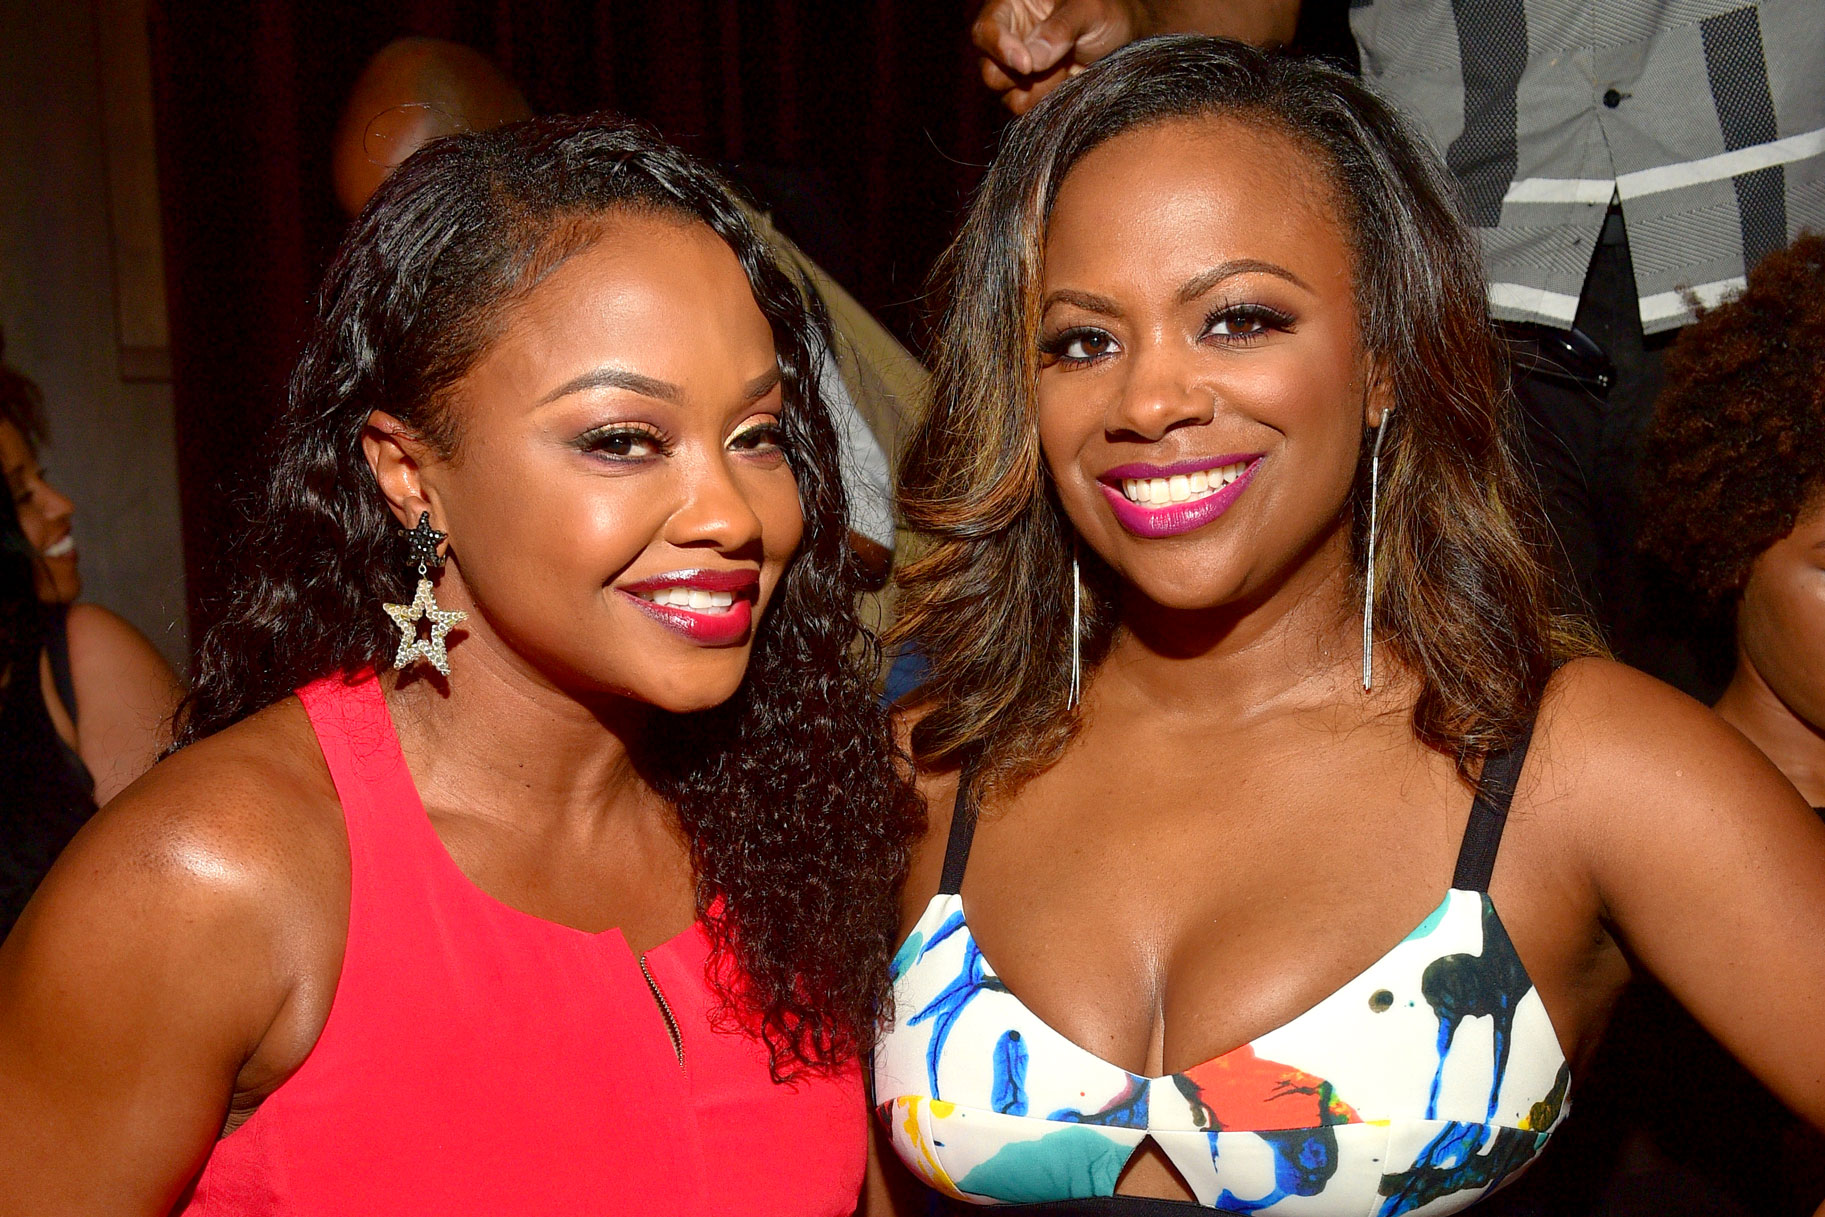 Kandi Burruss and Phaedra Parks